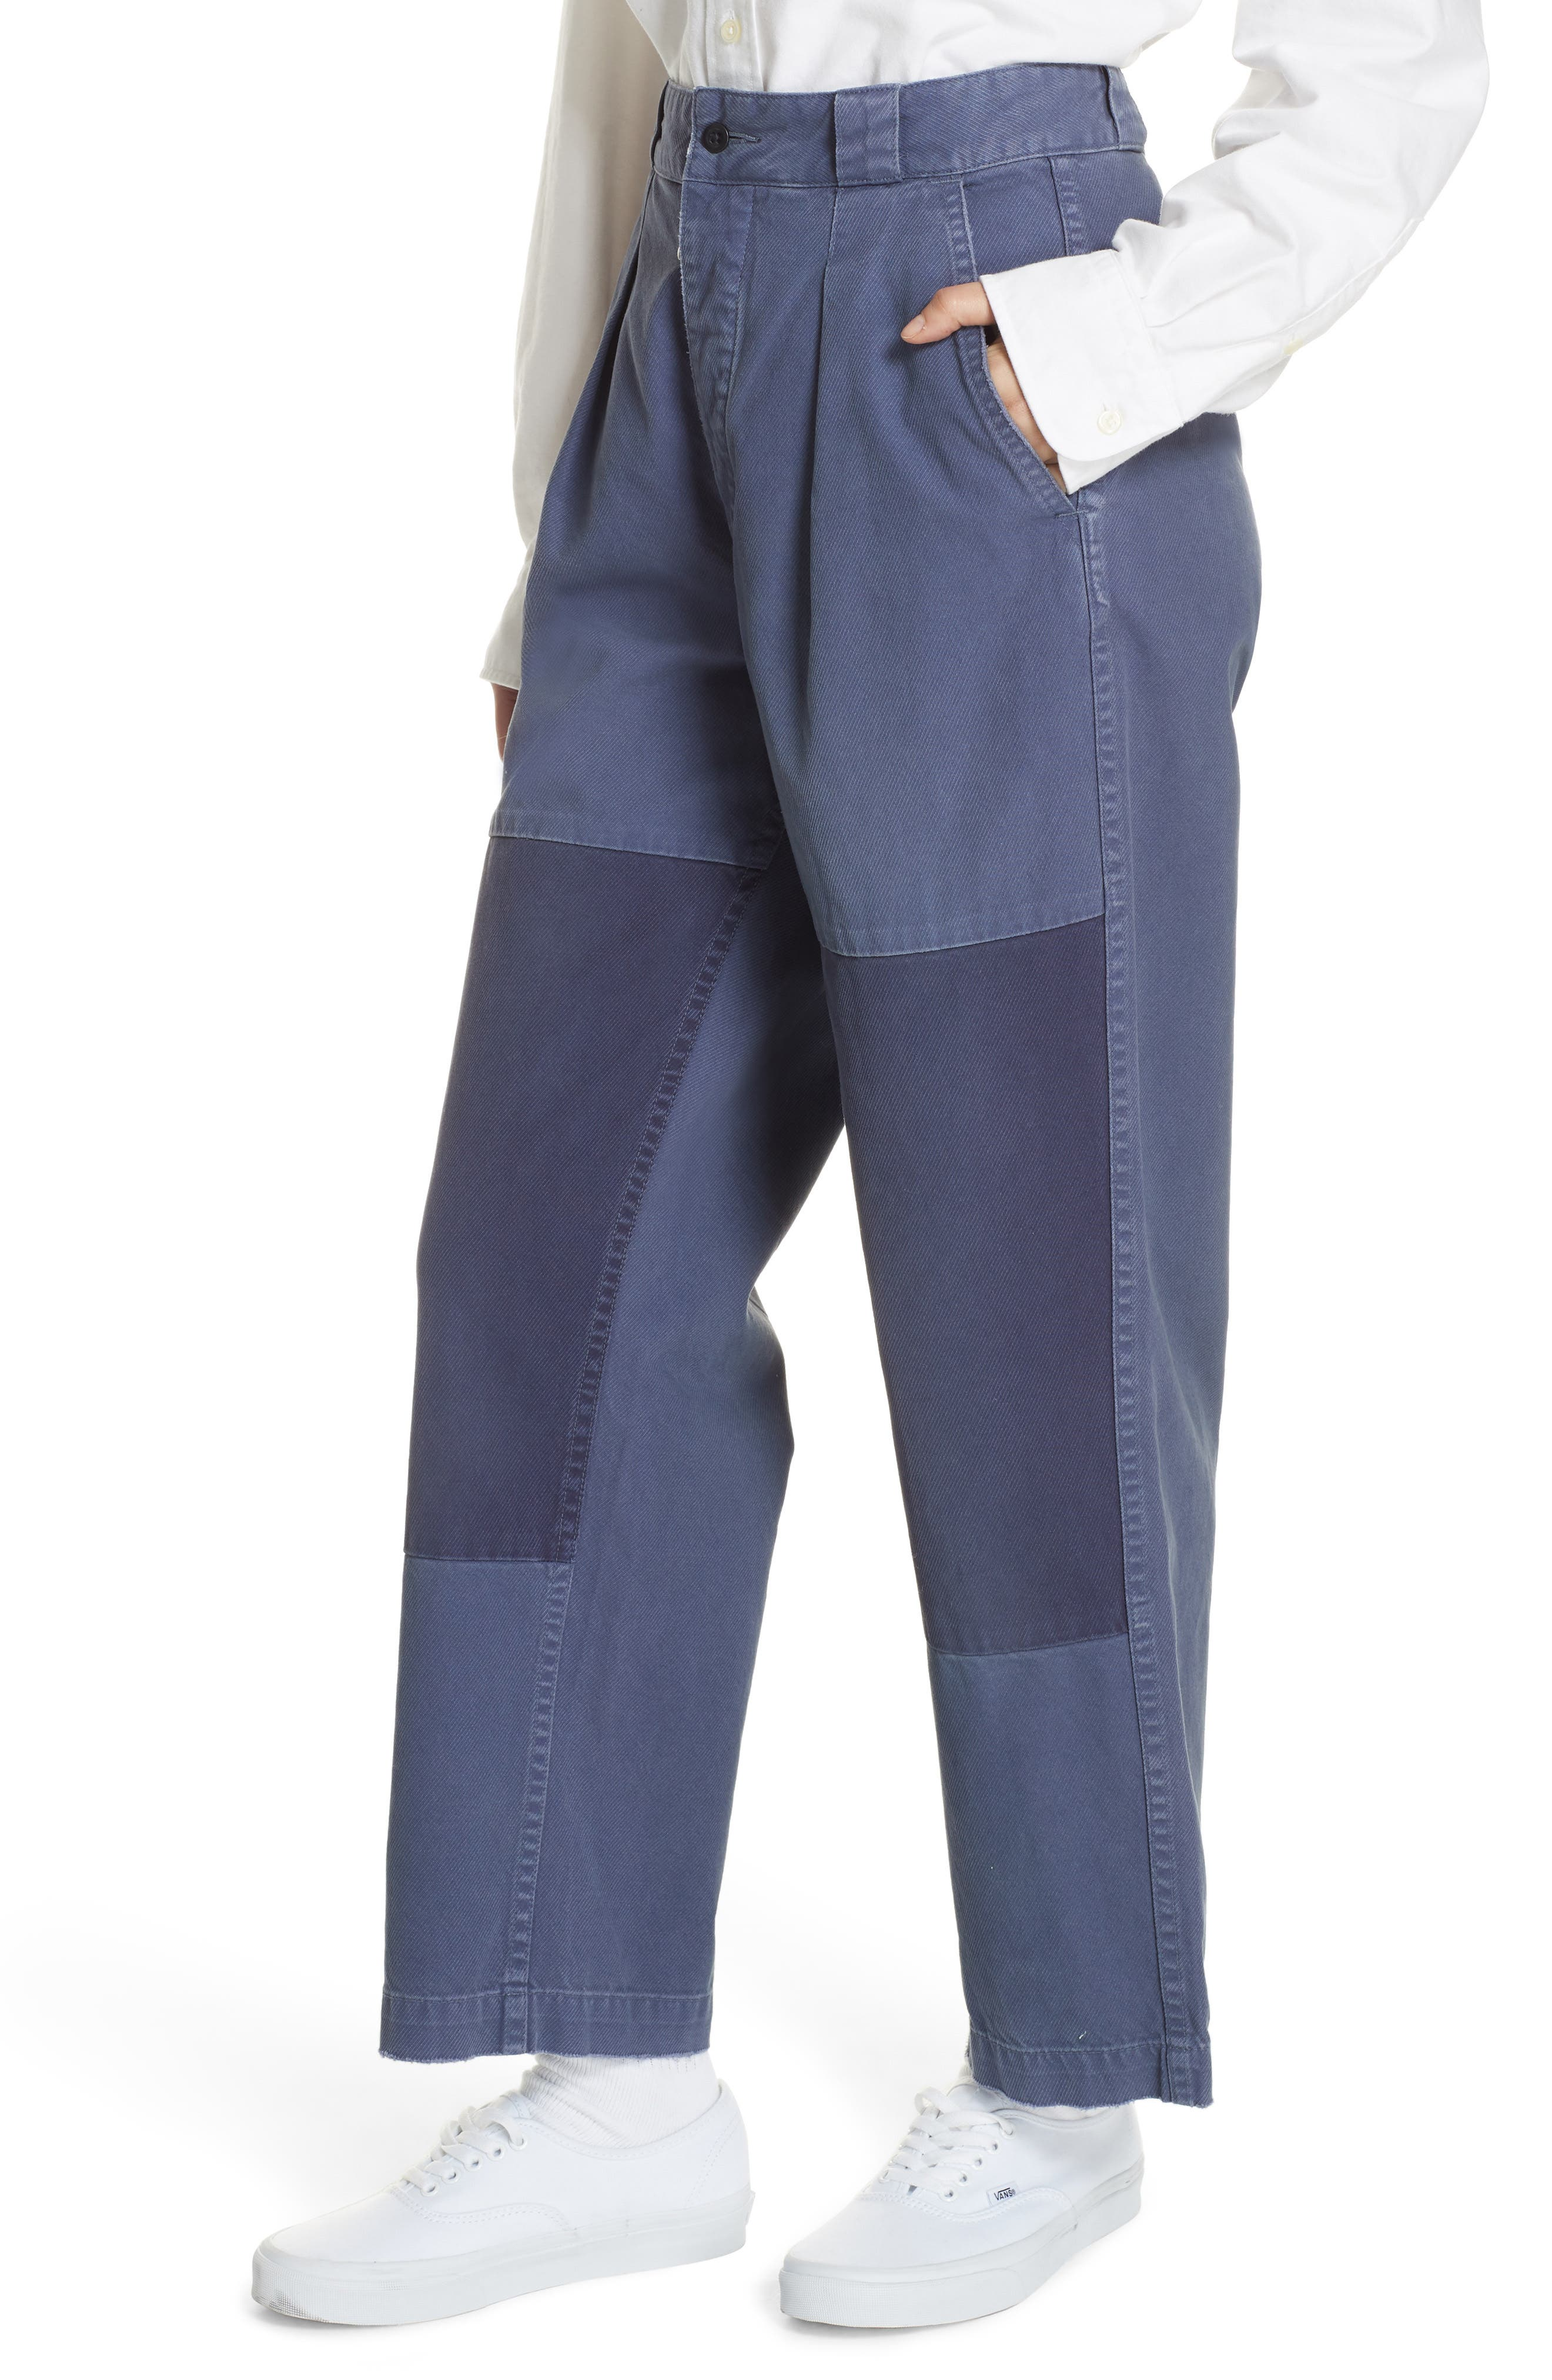 Patched Wide Leg Pants,                             Alternate thumbnail 4, color,                             NEW CLASSIC NAVY/ LIGHT NAVY